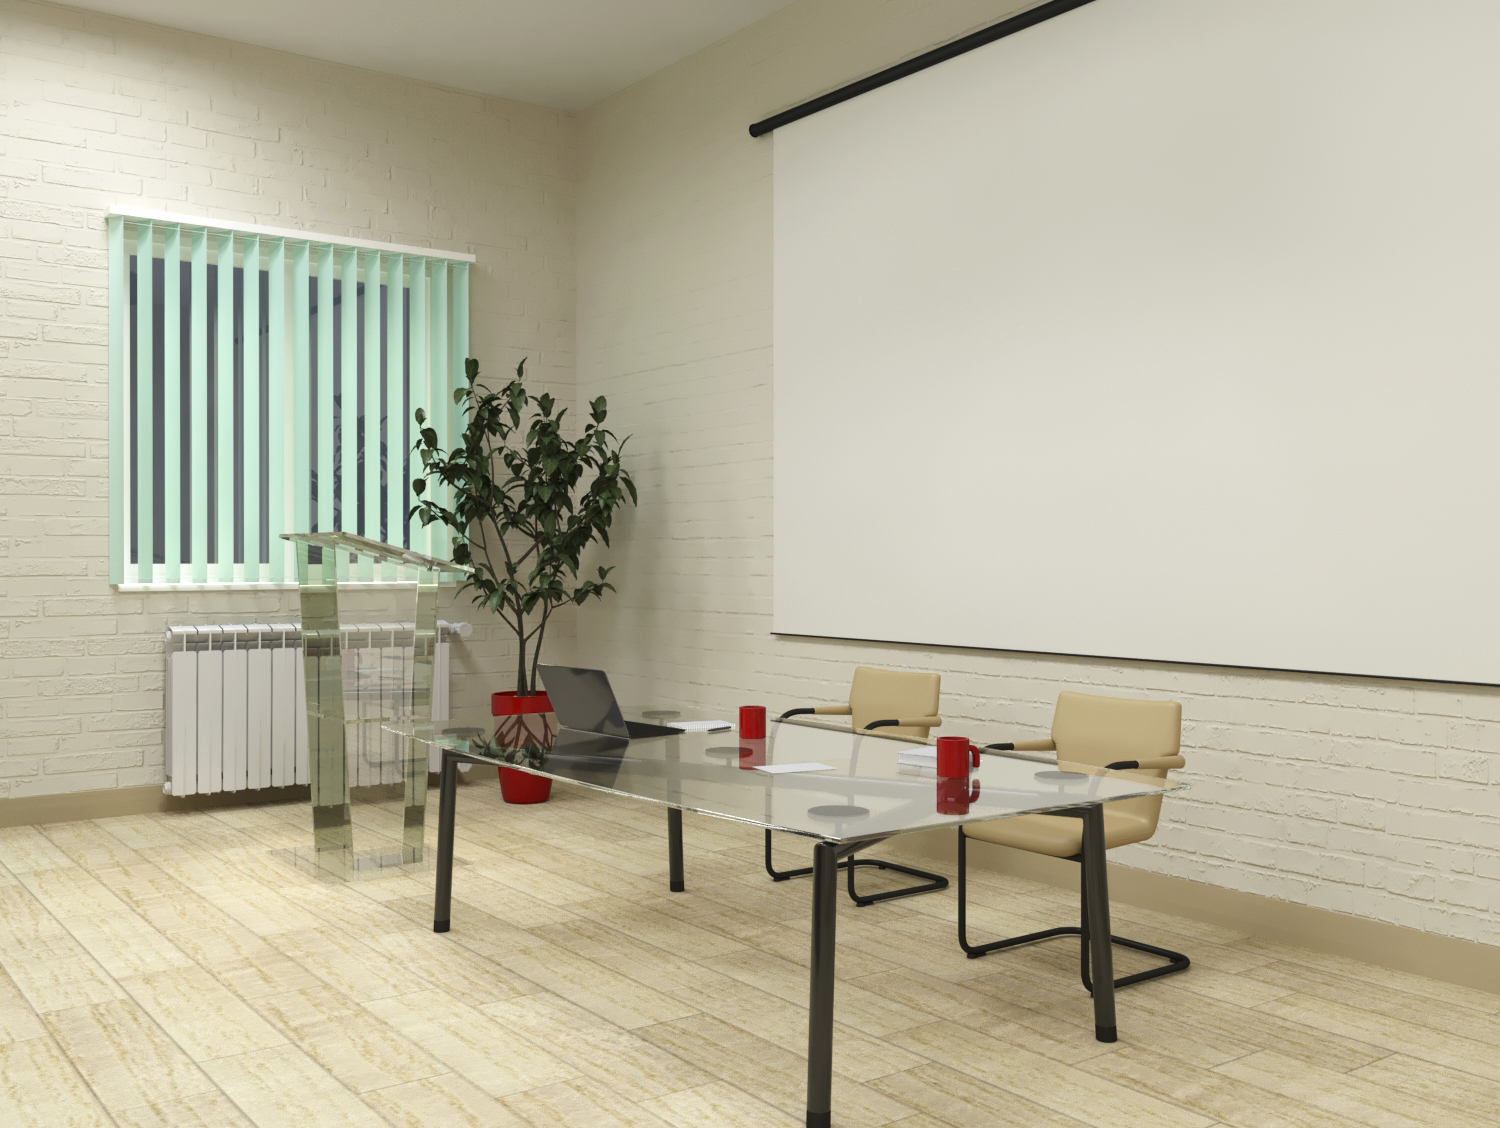 Reconstruction of the workshop for office premises. in 3d max corona render image